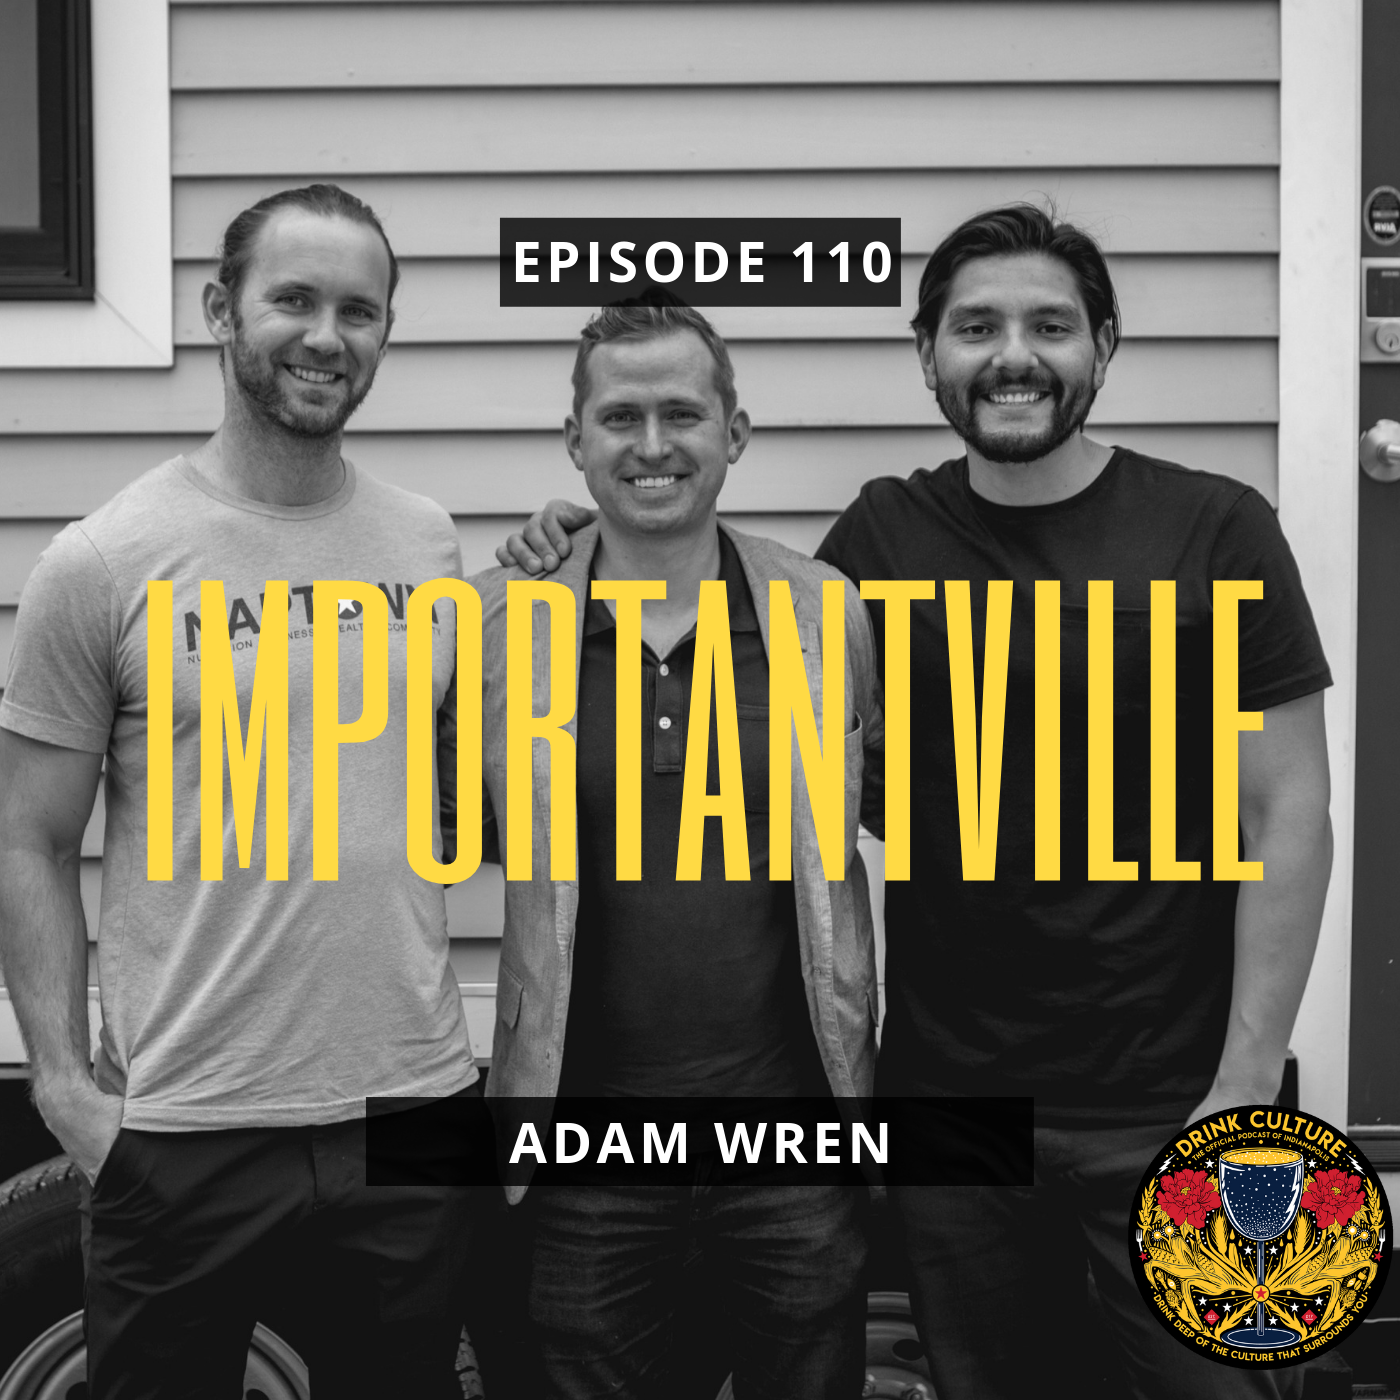 Episode 110: Importantville, Adam Wren -